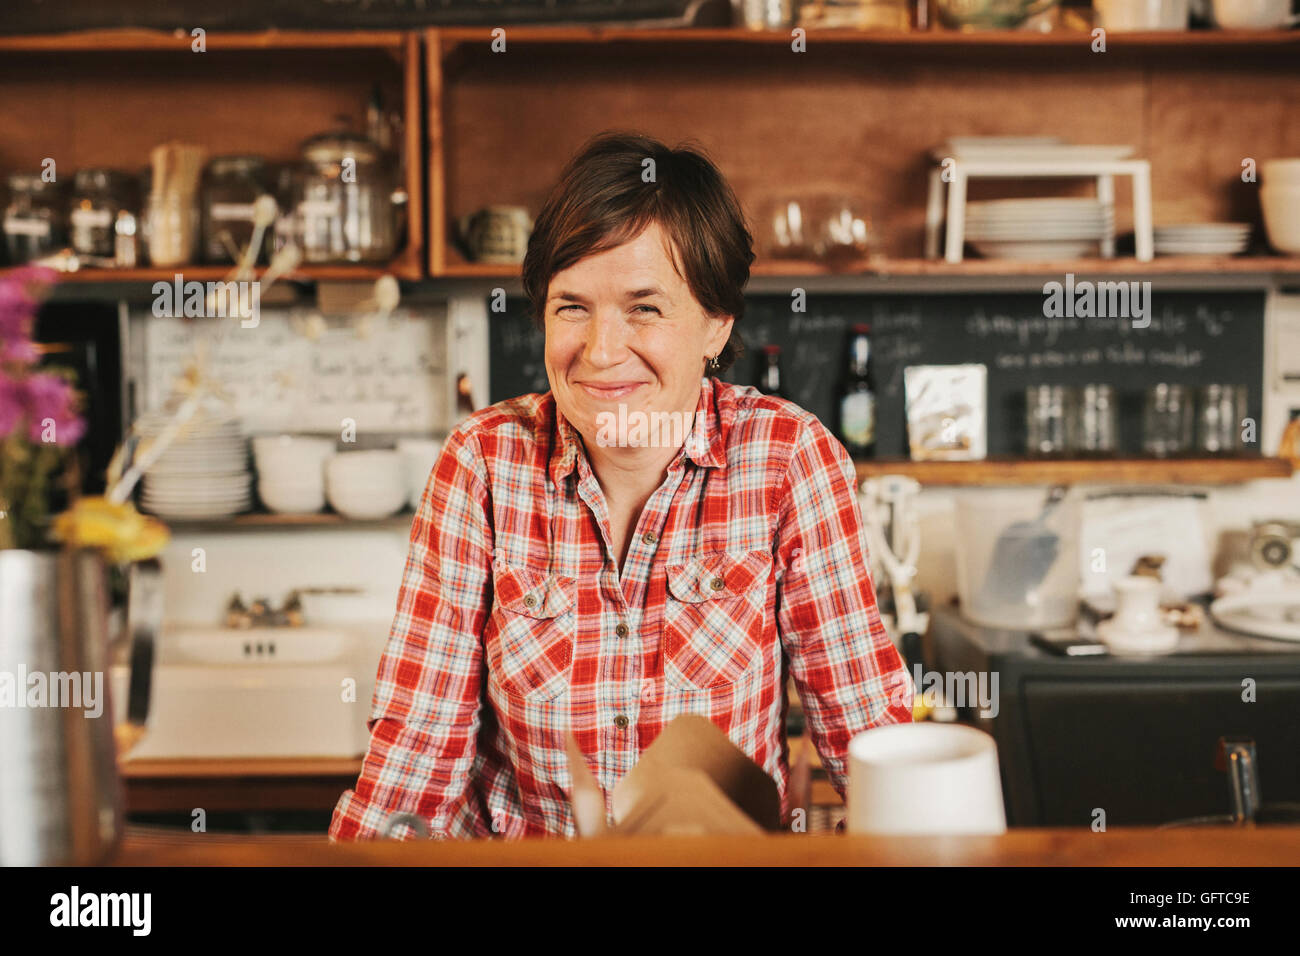 A woman working behind the counter in a coffee shop Business owner - Stock Image